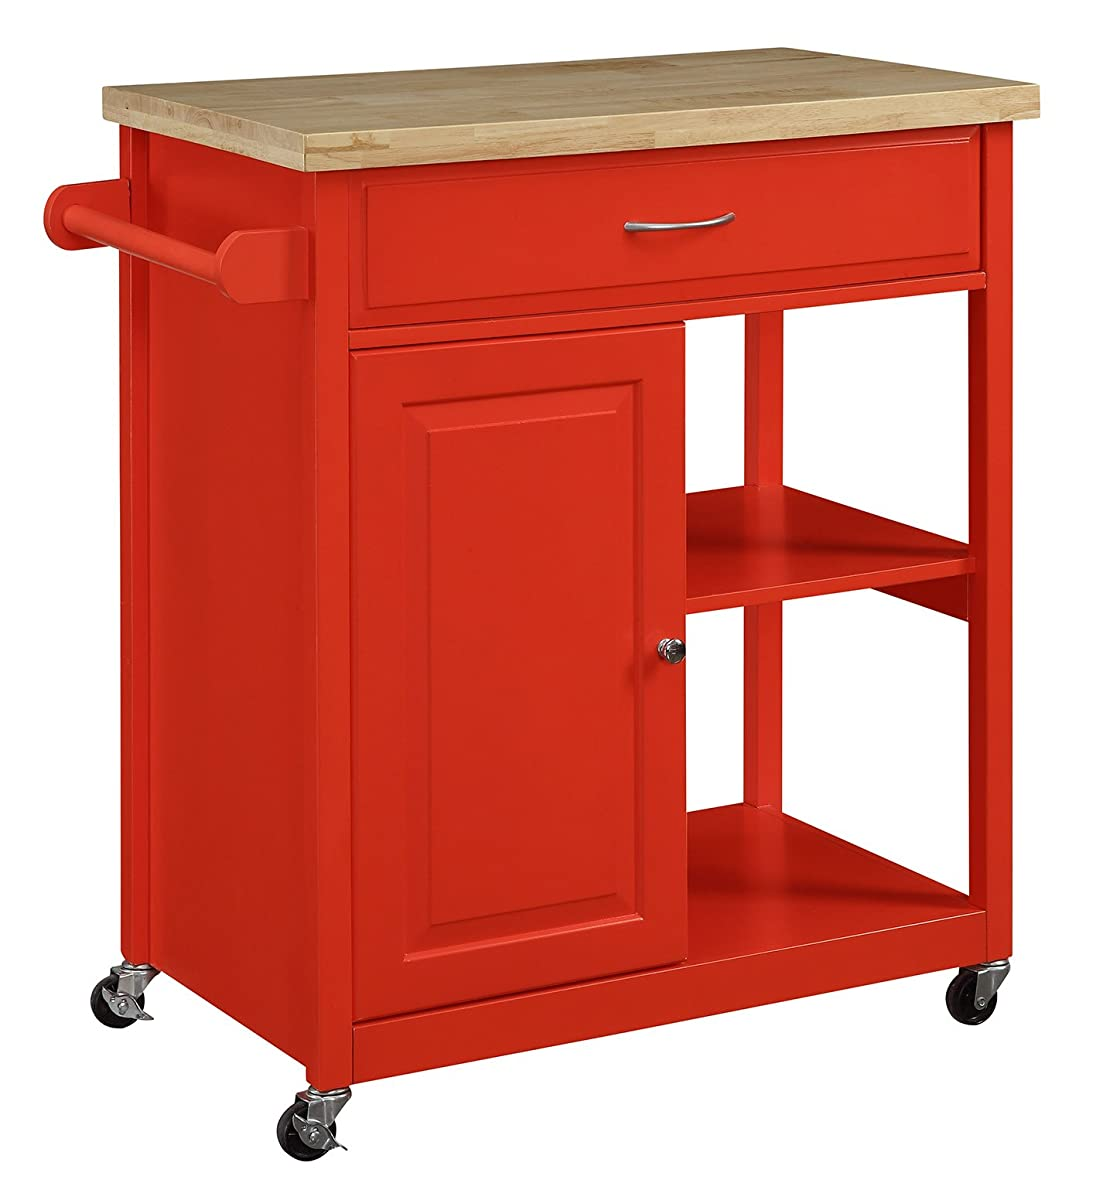 Butcher Block Red Kitchen Island : Oliver and Smith - Nashville Collection - Mobile Kitchen Island Cart on Wheels - Red - Natural ...